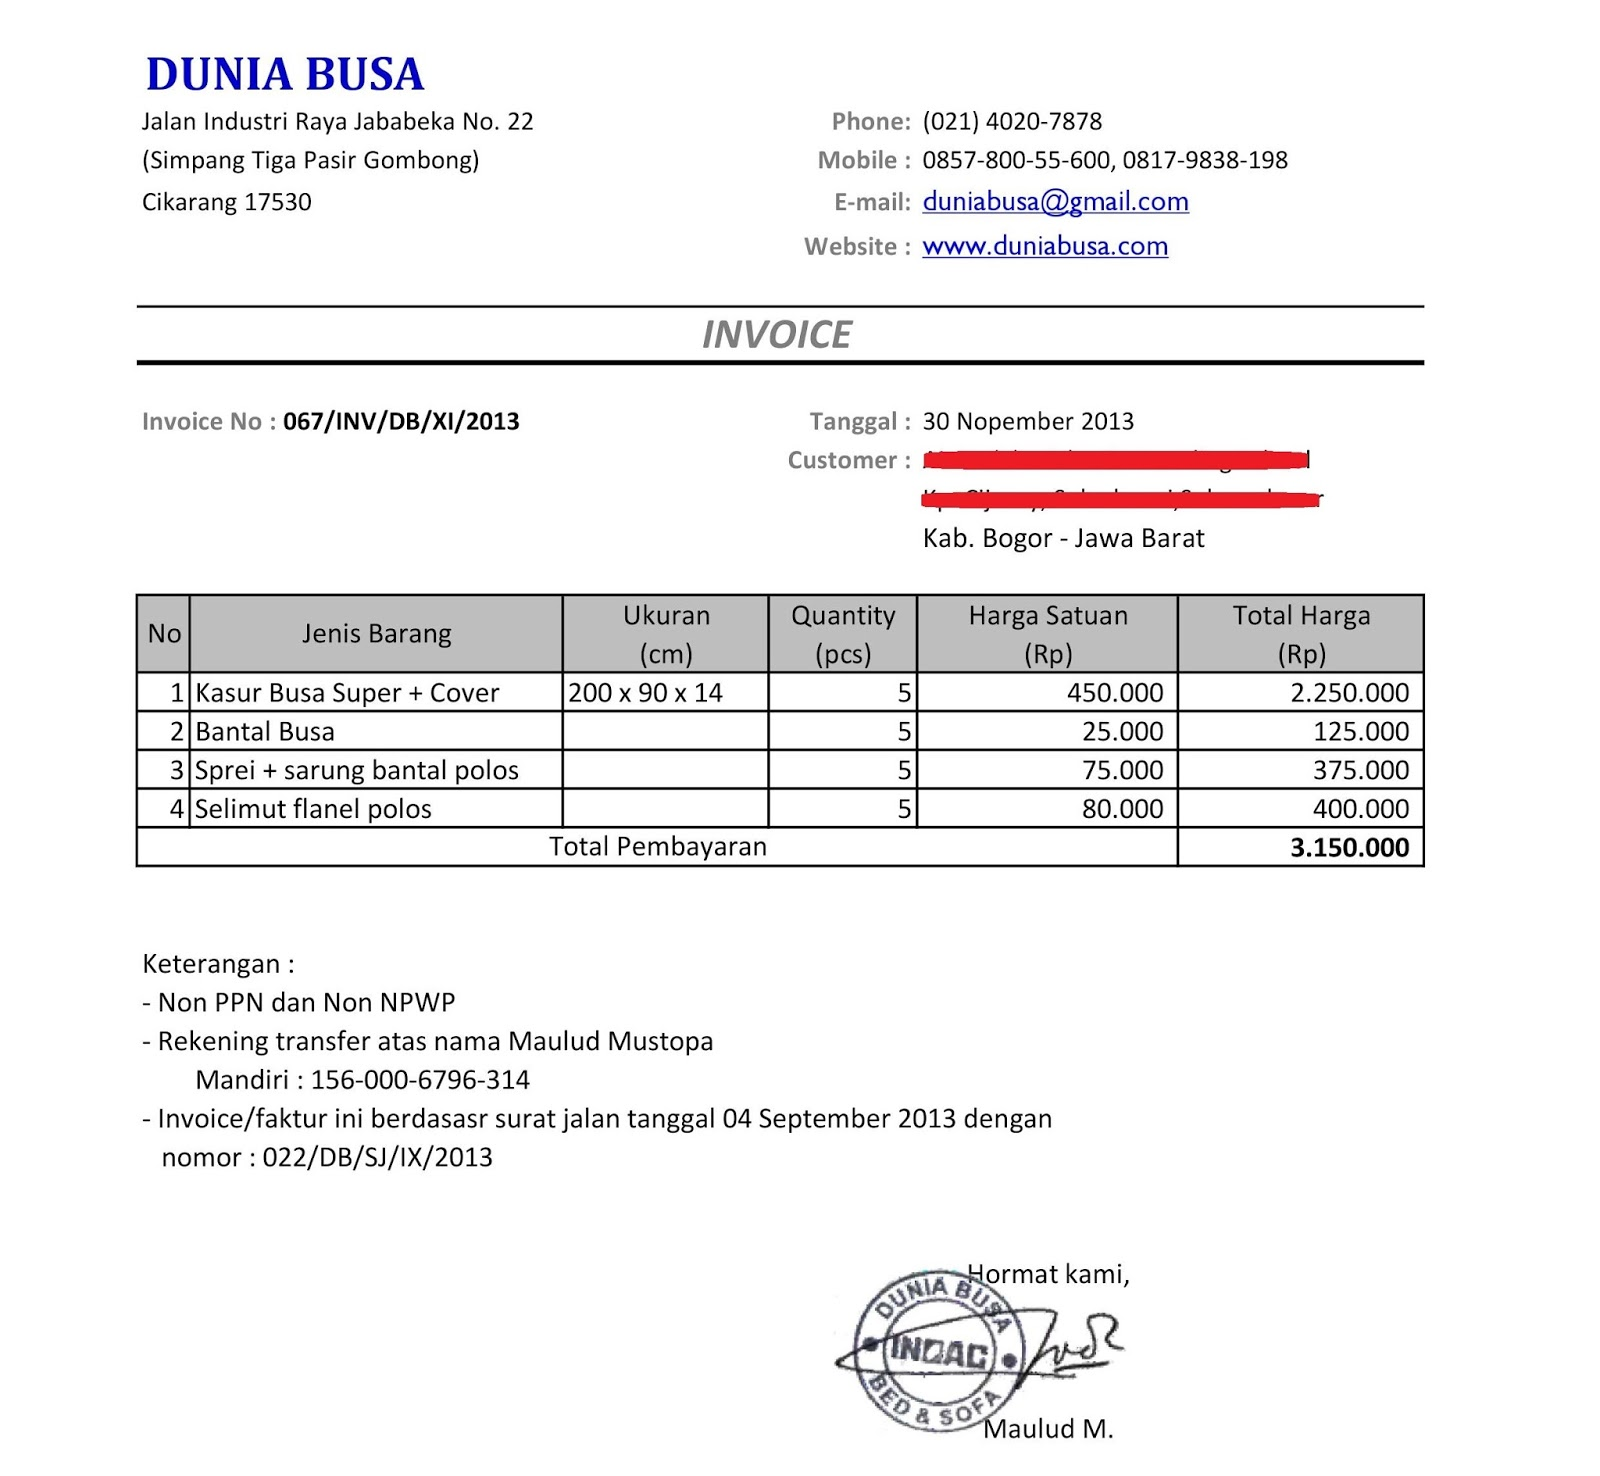 Usdgus  Surprising Free Invoice Online  Create Invoice Online  Invoice Template  With Engaging Contoh Format Invoice Atau Surat Tagihan  Brankas Arsip  Free Invoice Online With Lovely Way Invoice Matching Also Automotive Invoices In Addition How To Find Out Dealer Invoice Price And Small Business Invoices As Well As Send An Invoice On Ebay Additionally Microsoft Excel Invoice Templates From Sklepco With Usdgus  Engaging Free Invoice Online  Create Invoice Online  Invoice Template  With Lovely Contoh Format Invoice Atau Surat Tagihan  Brankas Arsip  Free Invoice Online And Surprising Way Invoice Matching Also Automotive Invoices In Addition How To Find Out Dealer Invoice Price From Sklepco